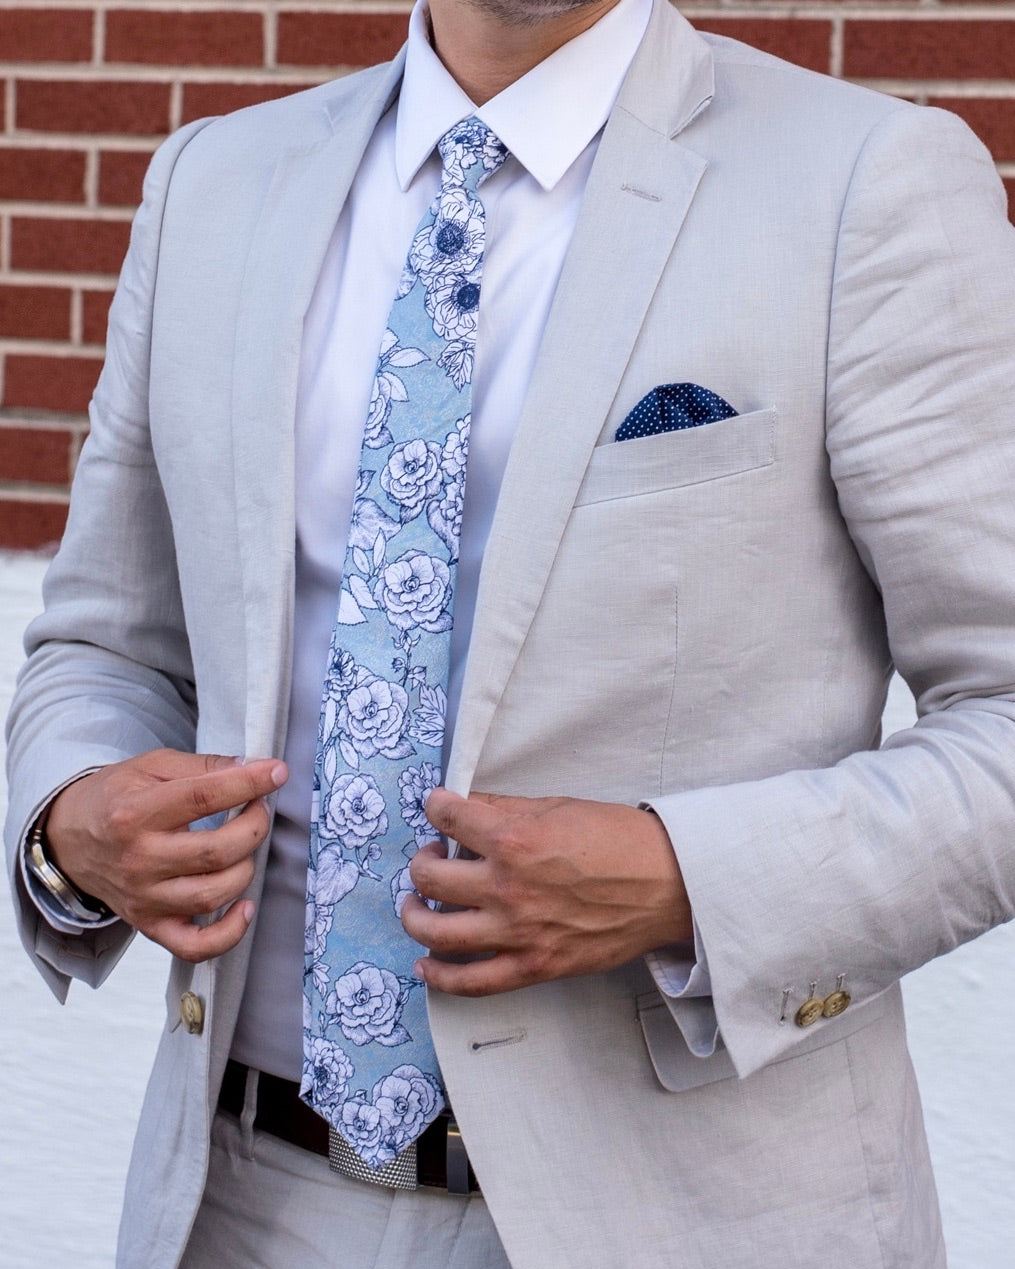 Man wearing a suit with a floral tie - Blue and white floral pattern tie - Oxford Square